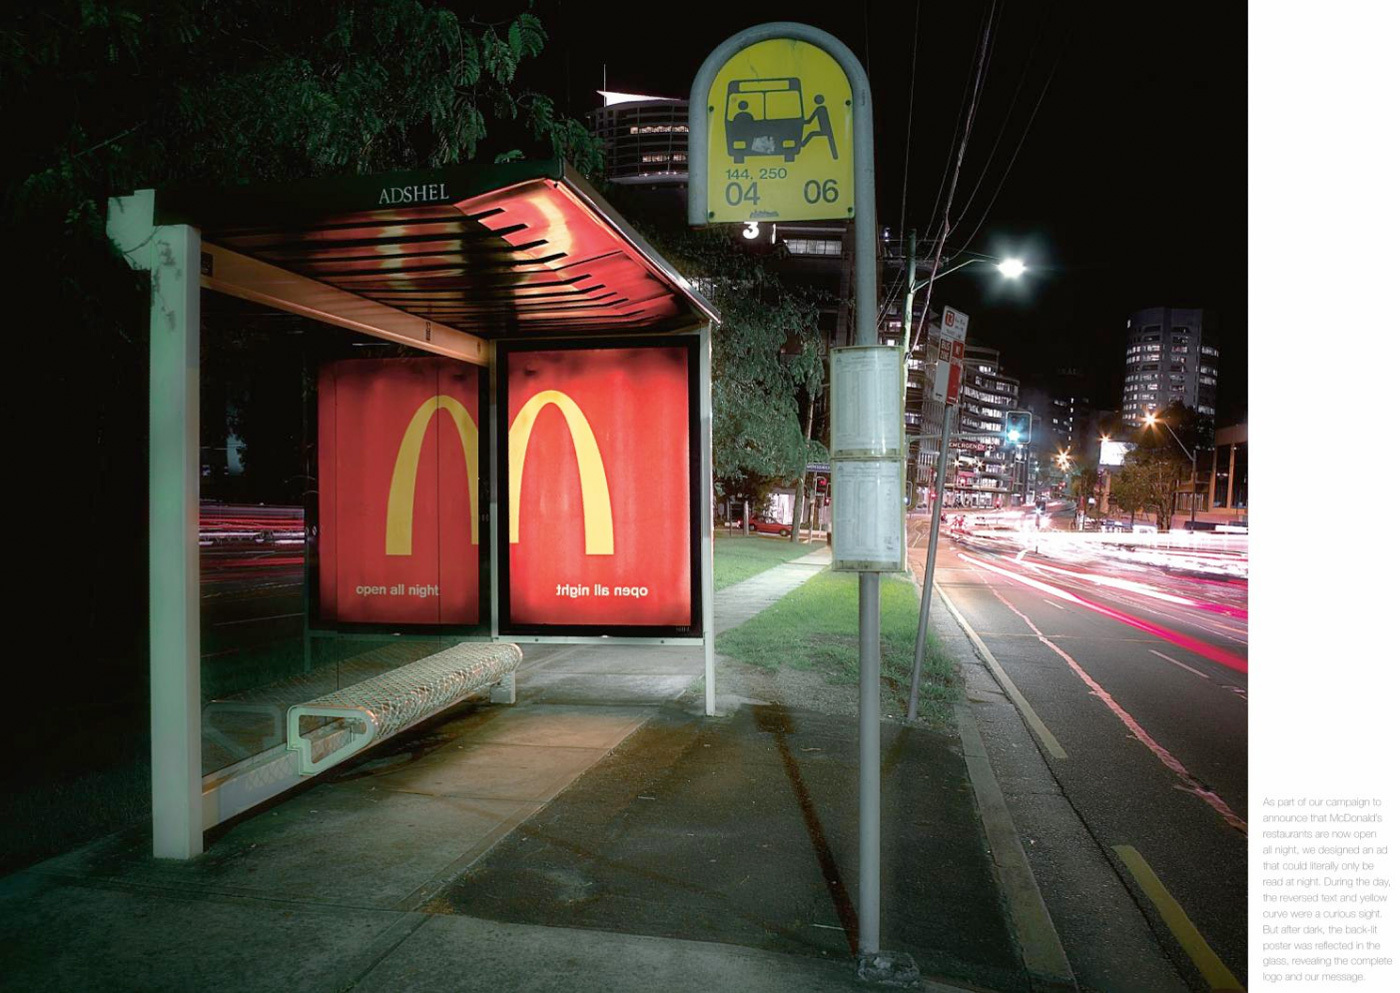 McDonald's: Open All Night